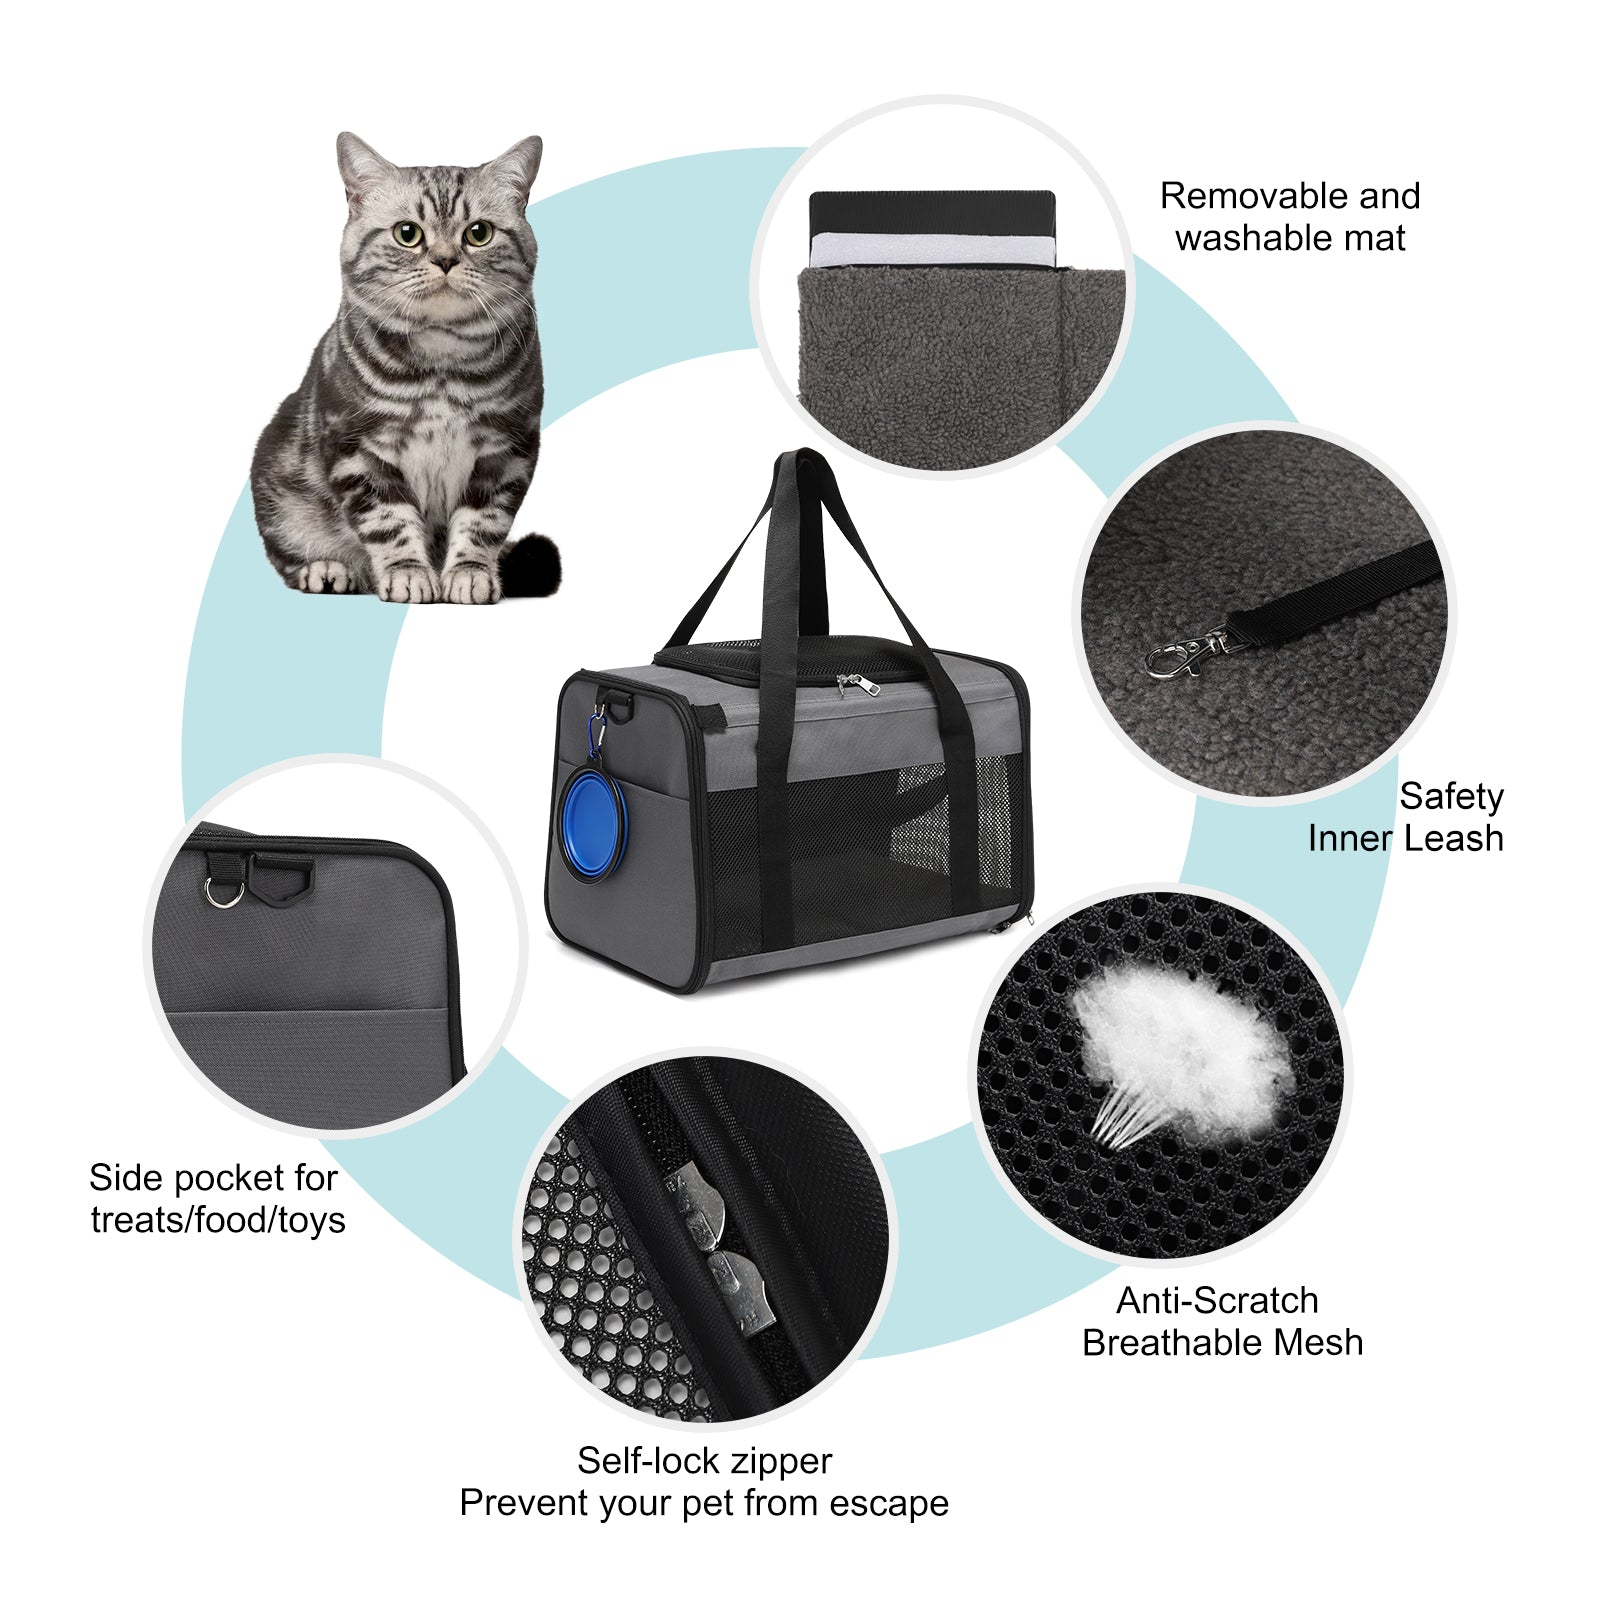 Cat Carrier Dog Carrier, Pet Travel Carrier Airline Approved for Small Dogs Puppies Large Cat